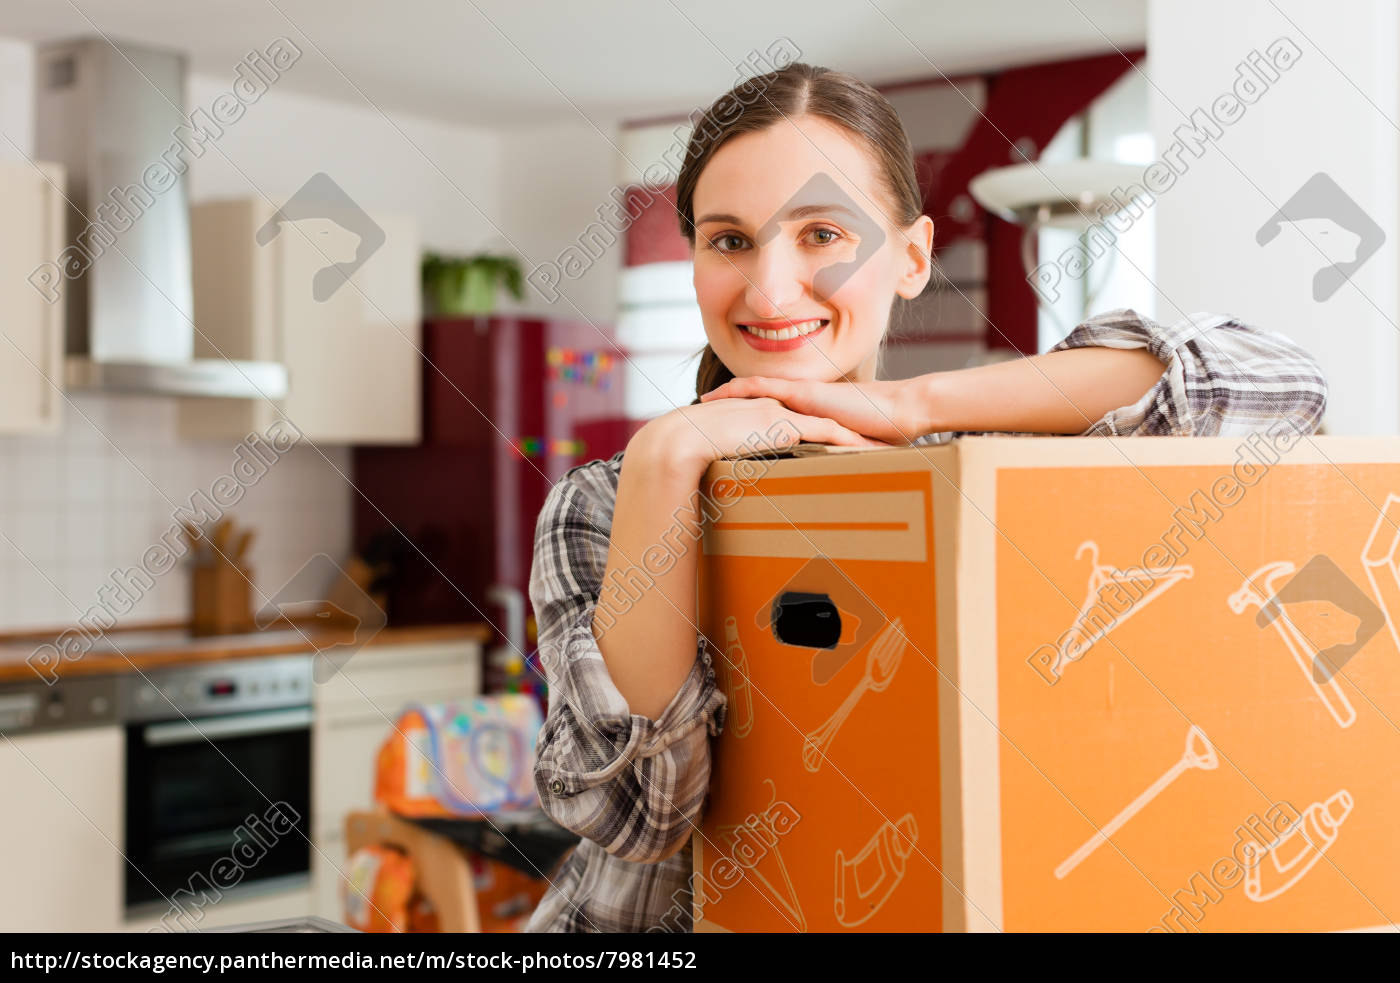 woman, with, moving, box, when, moving - 7981452